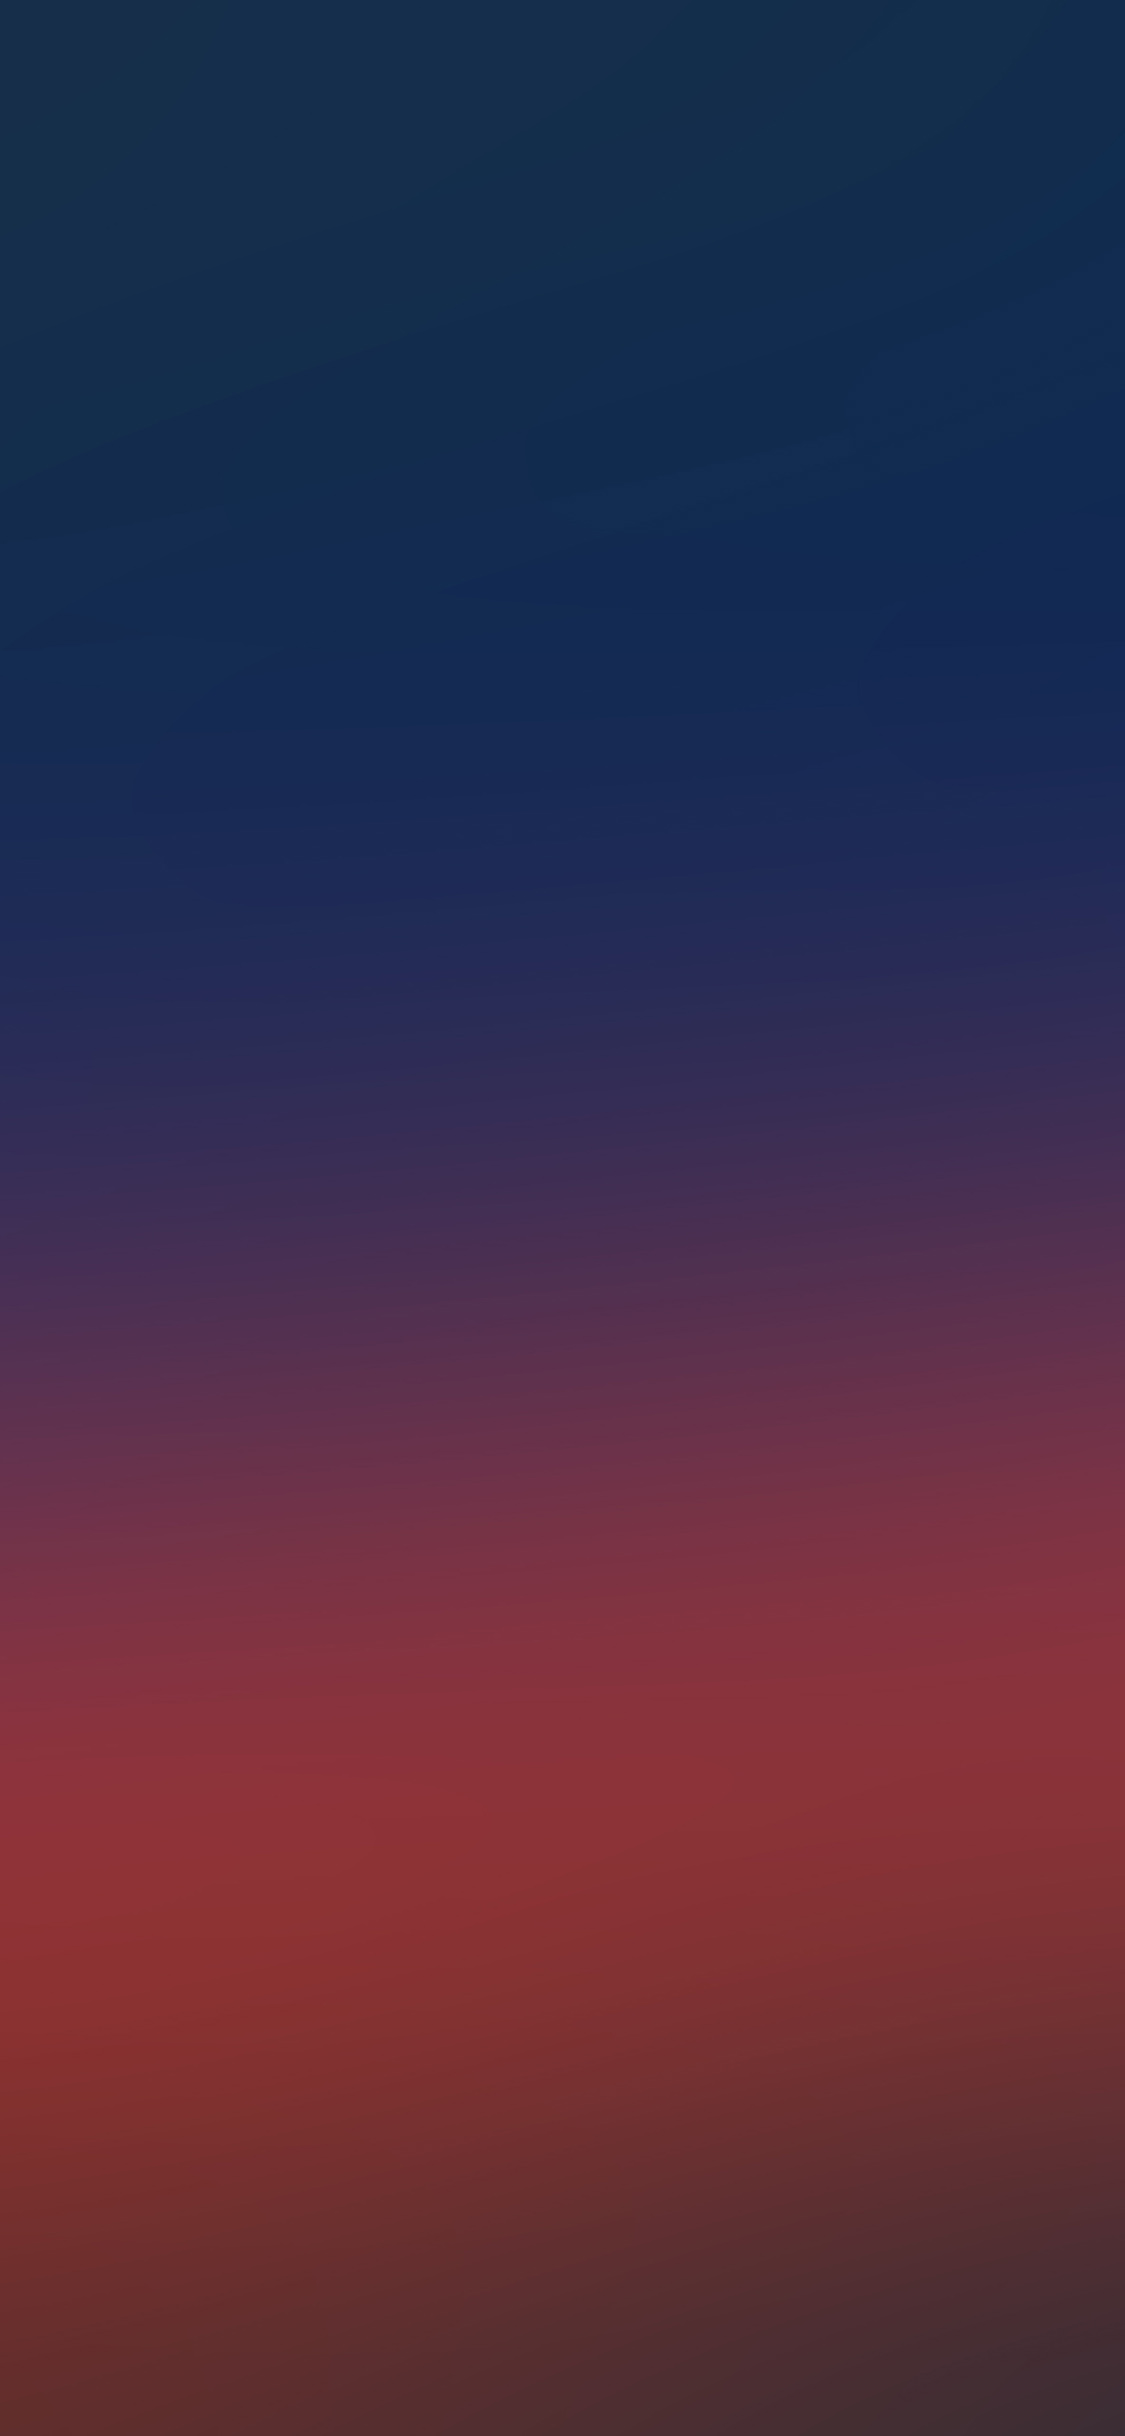 iPhoneXpapers.com-Apple-iPhone-wallpaper-sl38-blue-red-blur-gradation